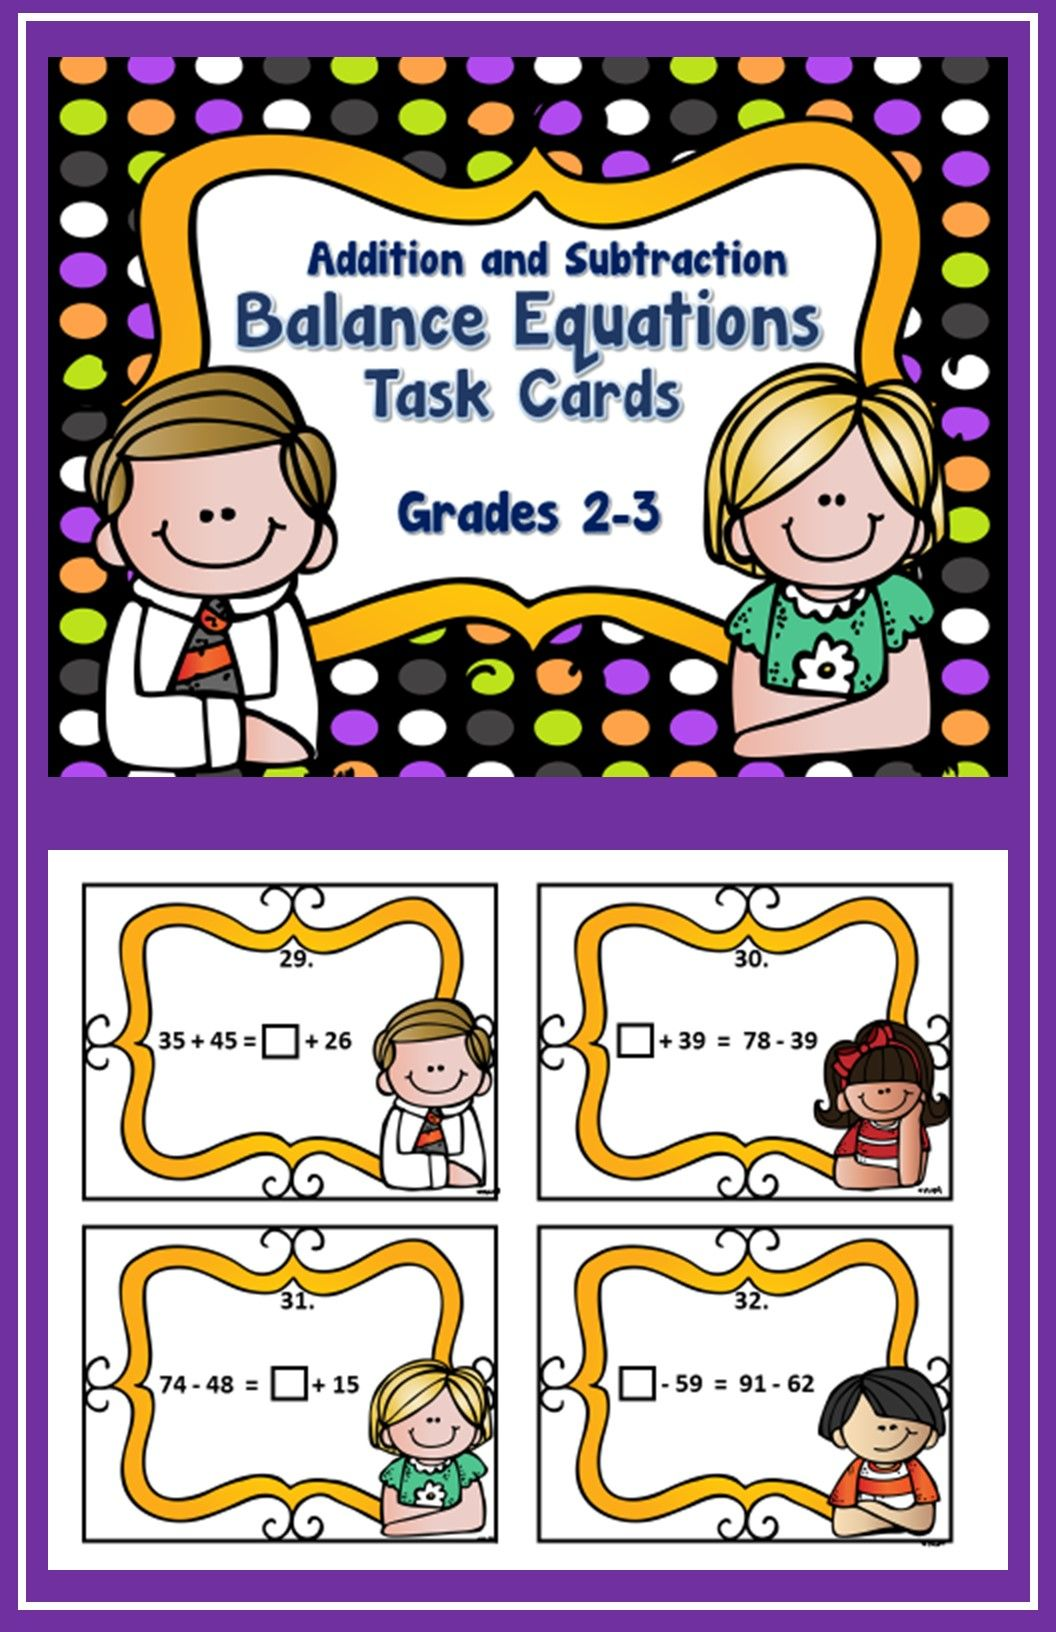 Addition And Subtraction Balancing Equations Task Cards